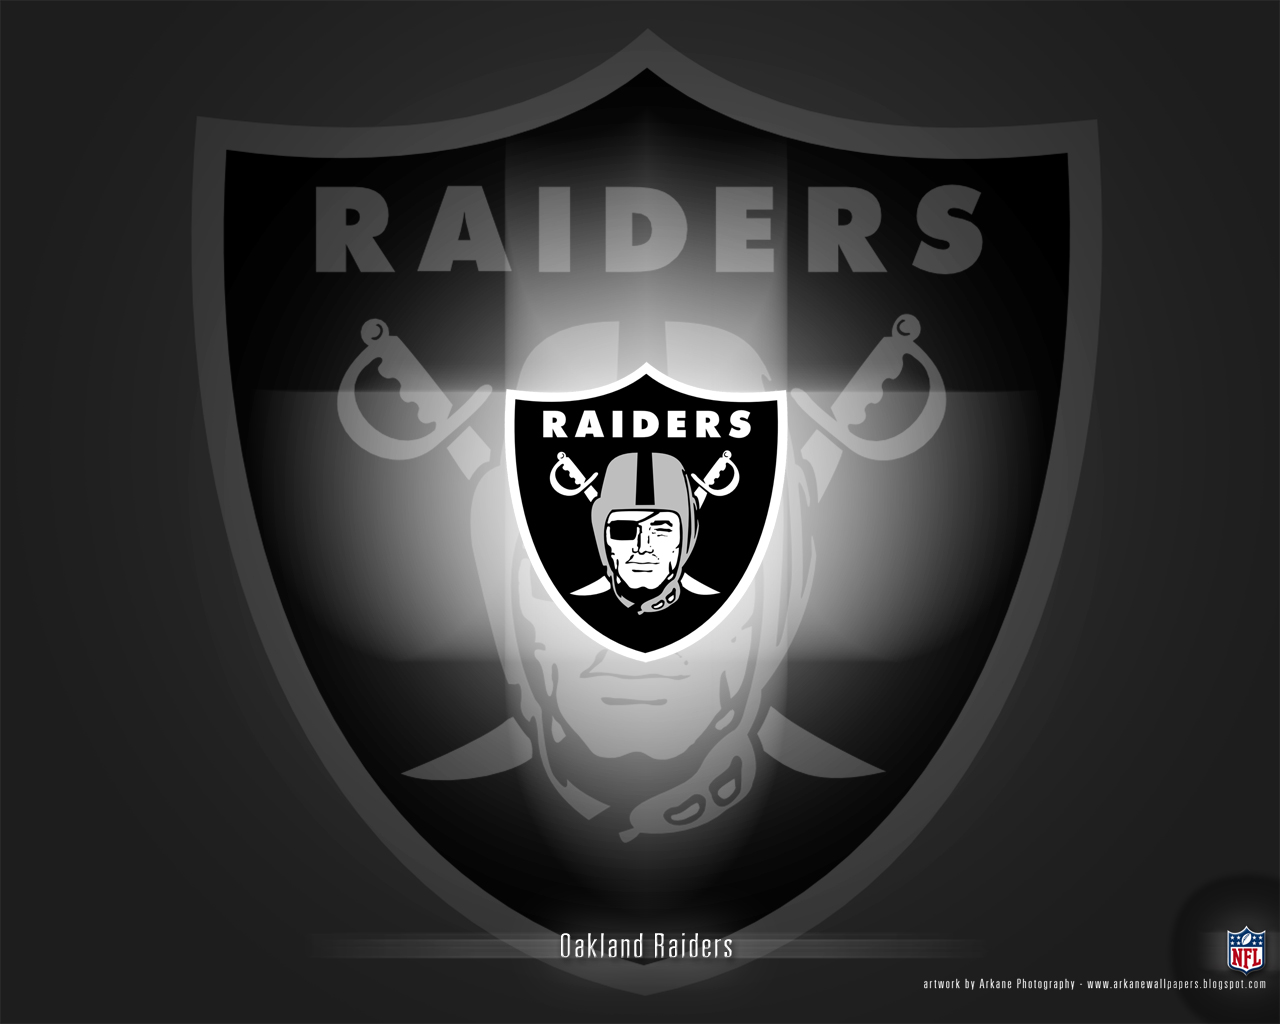 images about Raiders on Pinterest  United we stand, Oakland 1280x1024